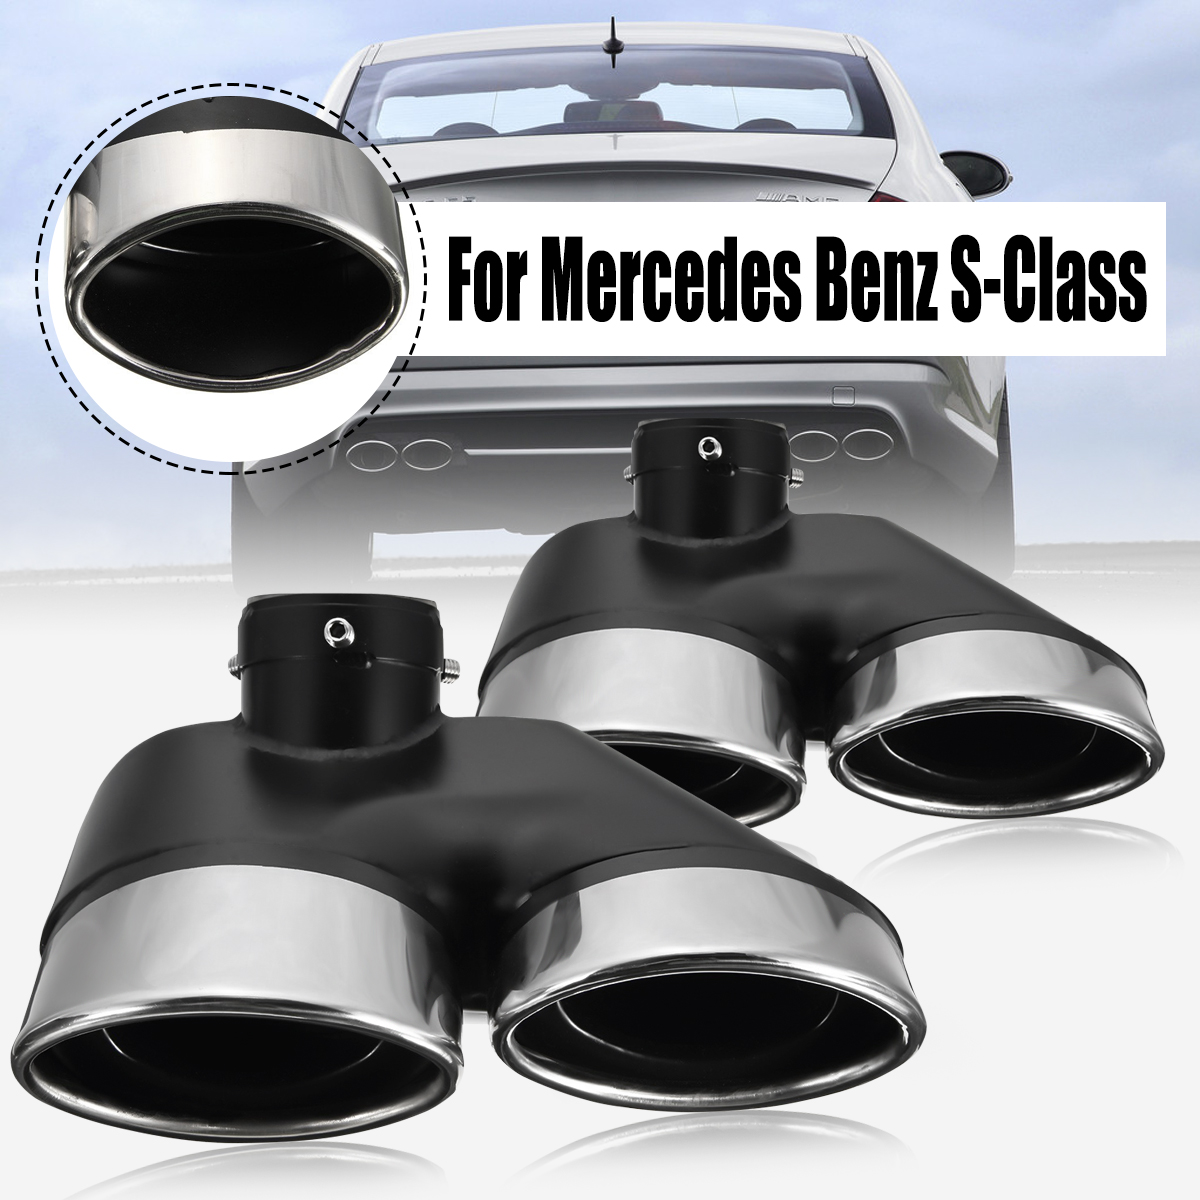 For Mercedes Benz W220 S430 S500 For AMG 2000 2001 2002 2003 2004 2005 2Pcs Auto Dual Exhaust Muffler Stainless Steel Tips Pipe